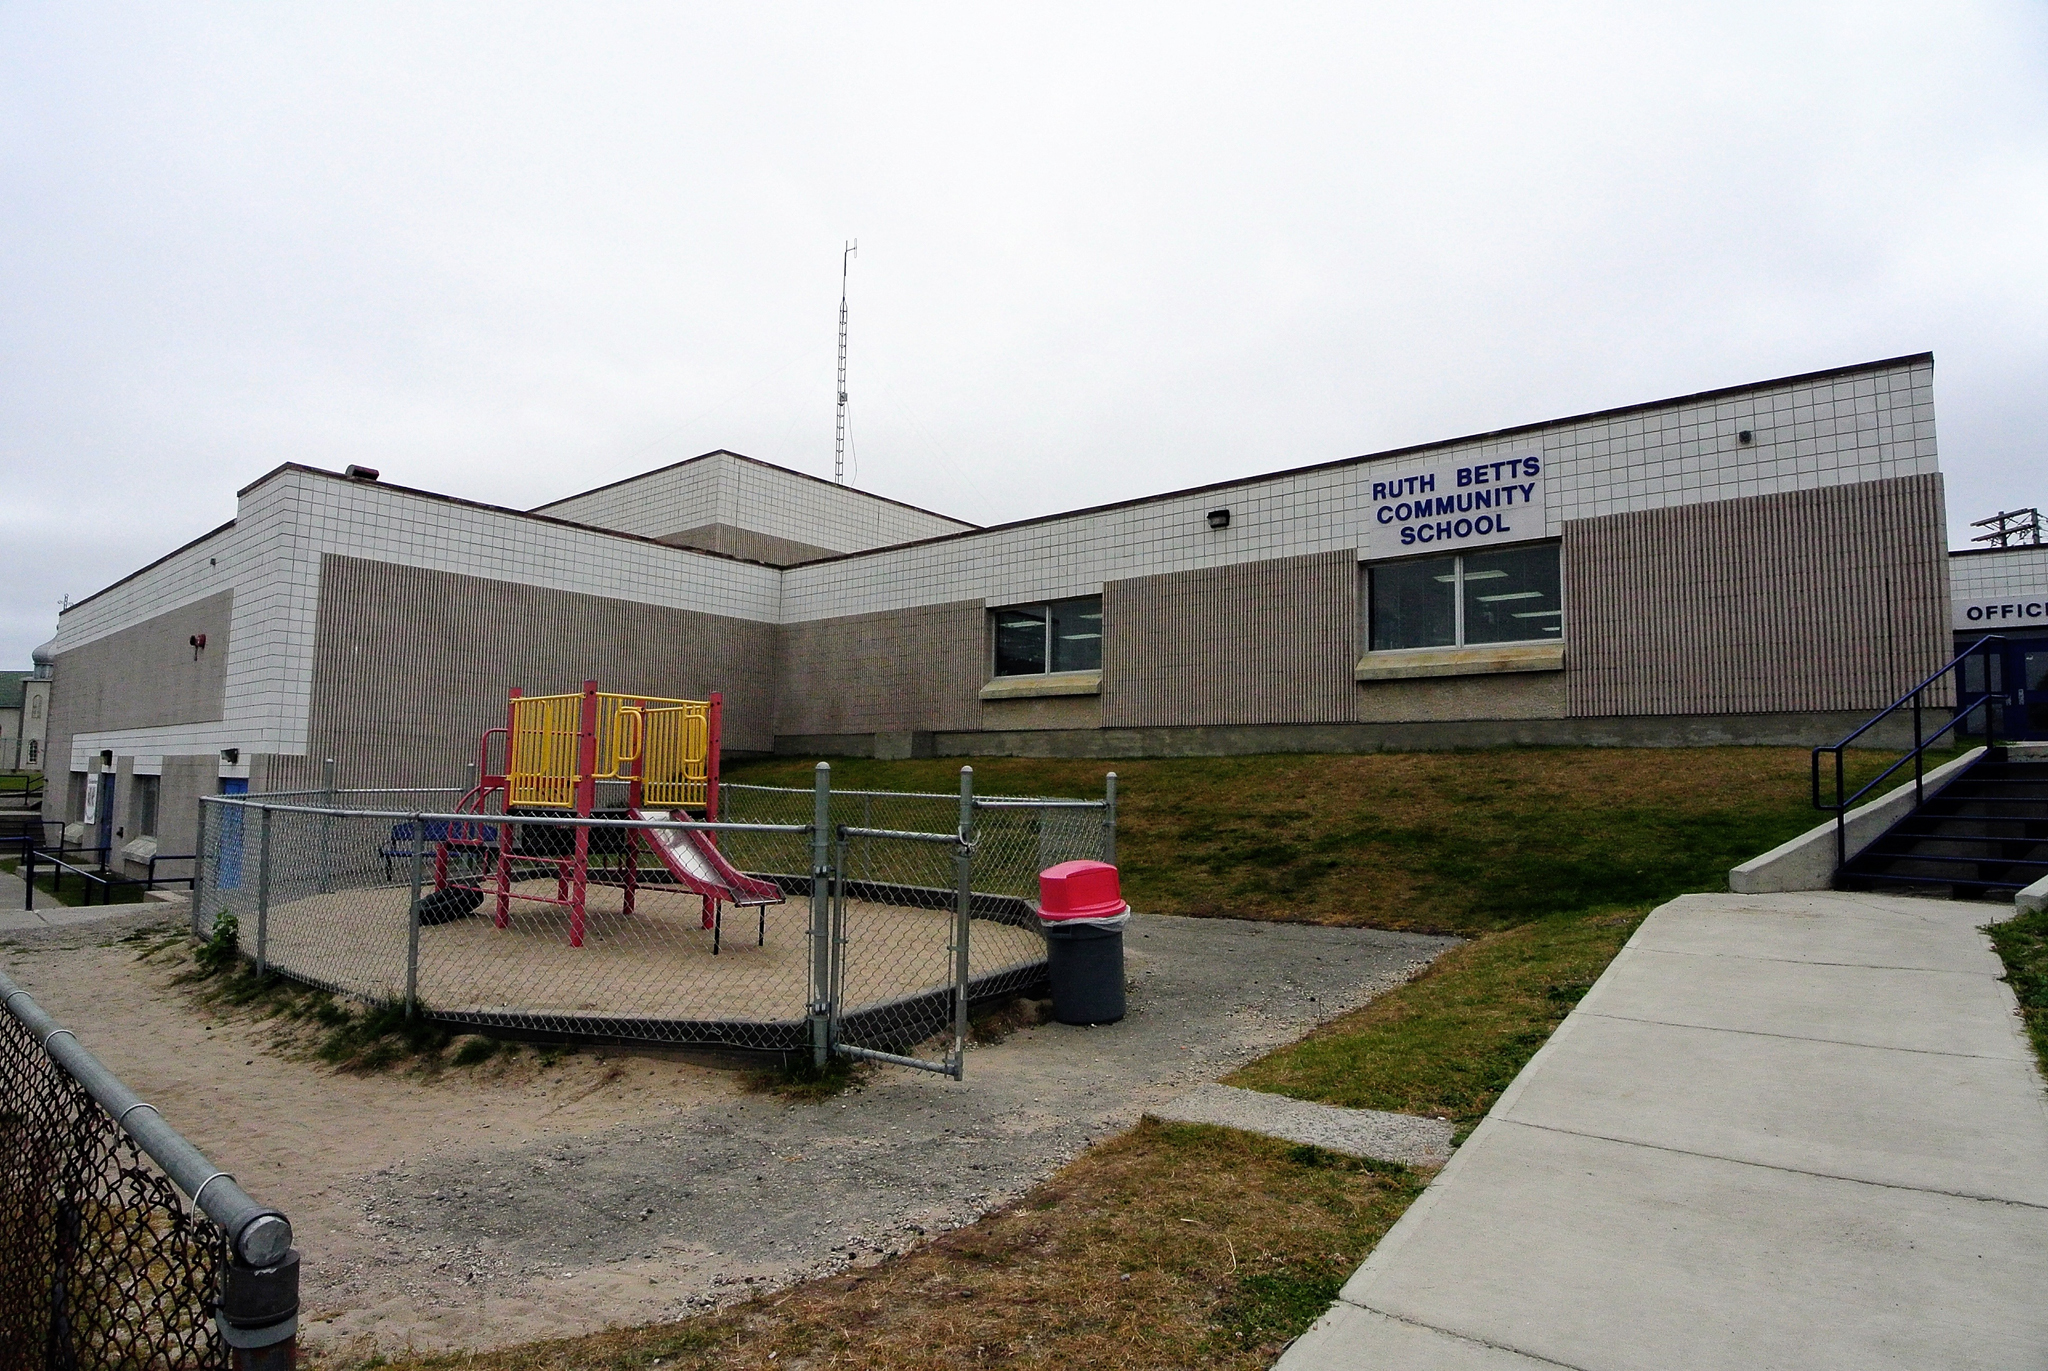 Ruth Betts Community School in Flin Flon.